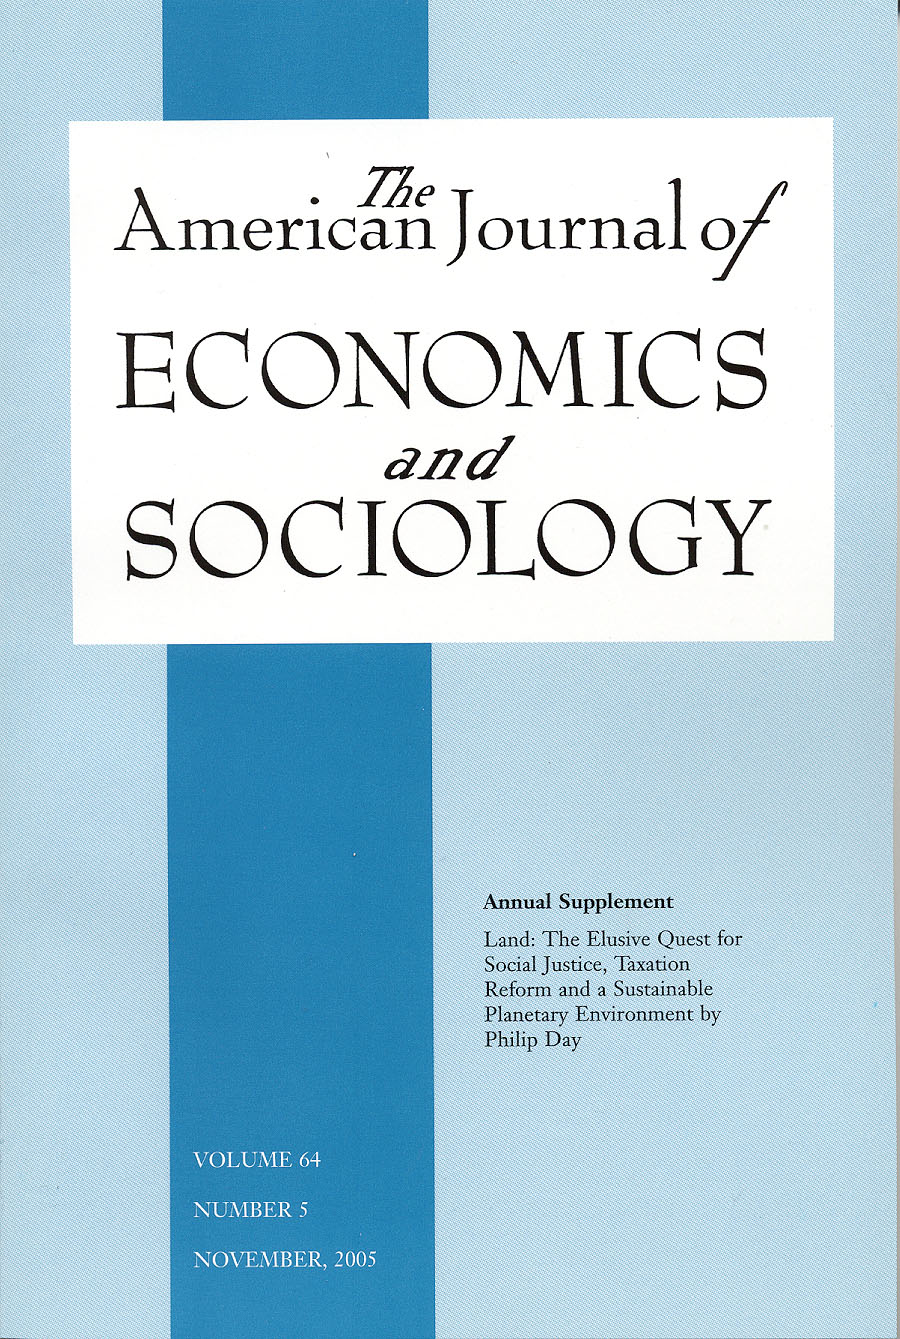 American Journal of Economics and Sociology